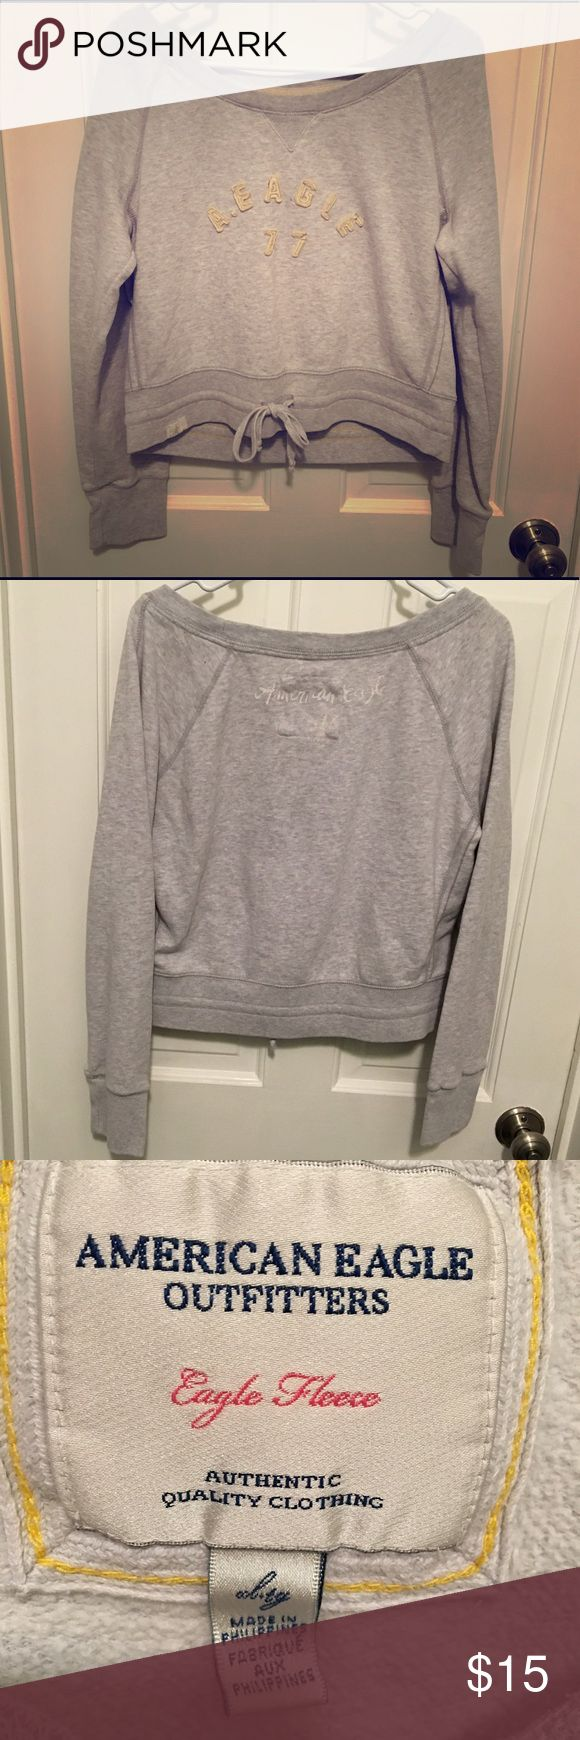 """American Eagle Sweatshirt with Tie Grey sweatshirt with tie inside the bottom band. Baby yellow/ off white Details on the front and white """"American Eagle """" printed on the back!:) very cozy and cute! American Eagle Outfitters Tops Sweatshirts & Hoodies"""